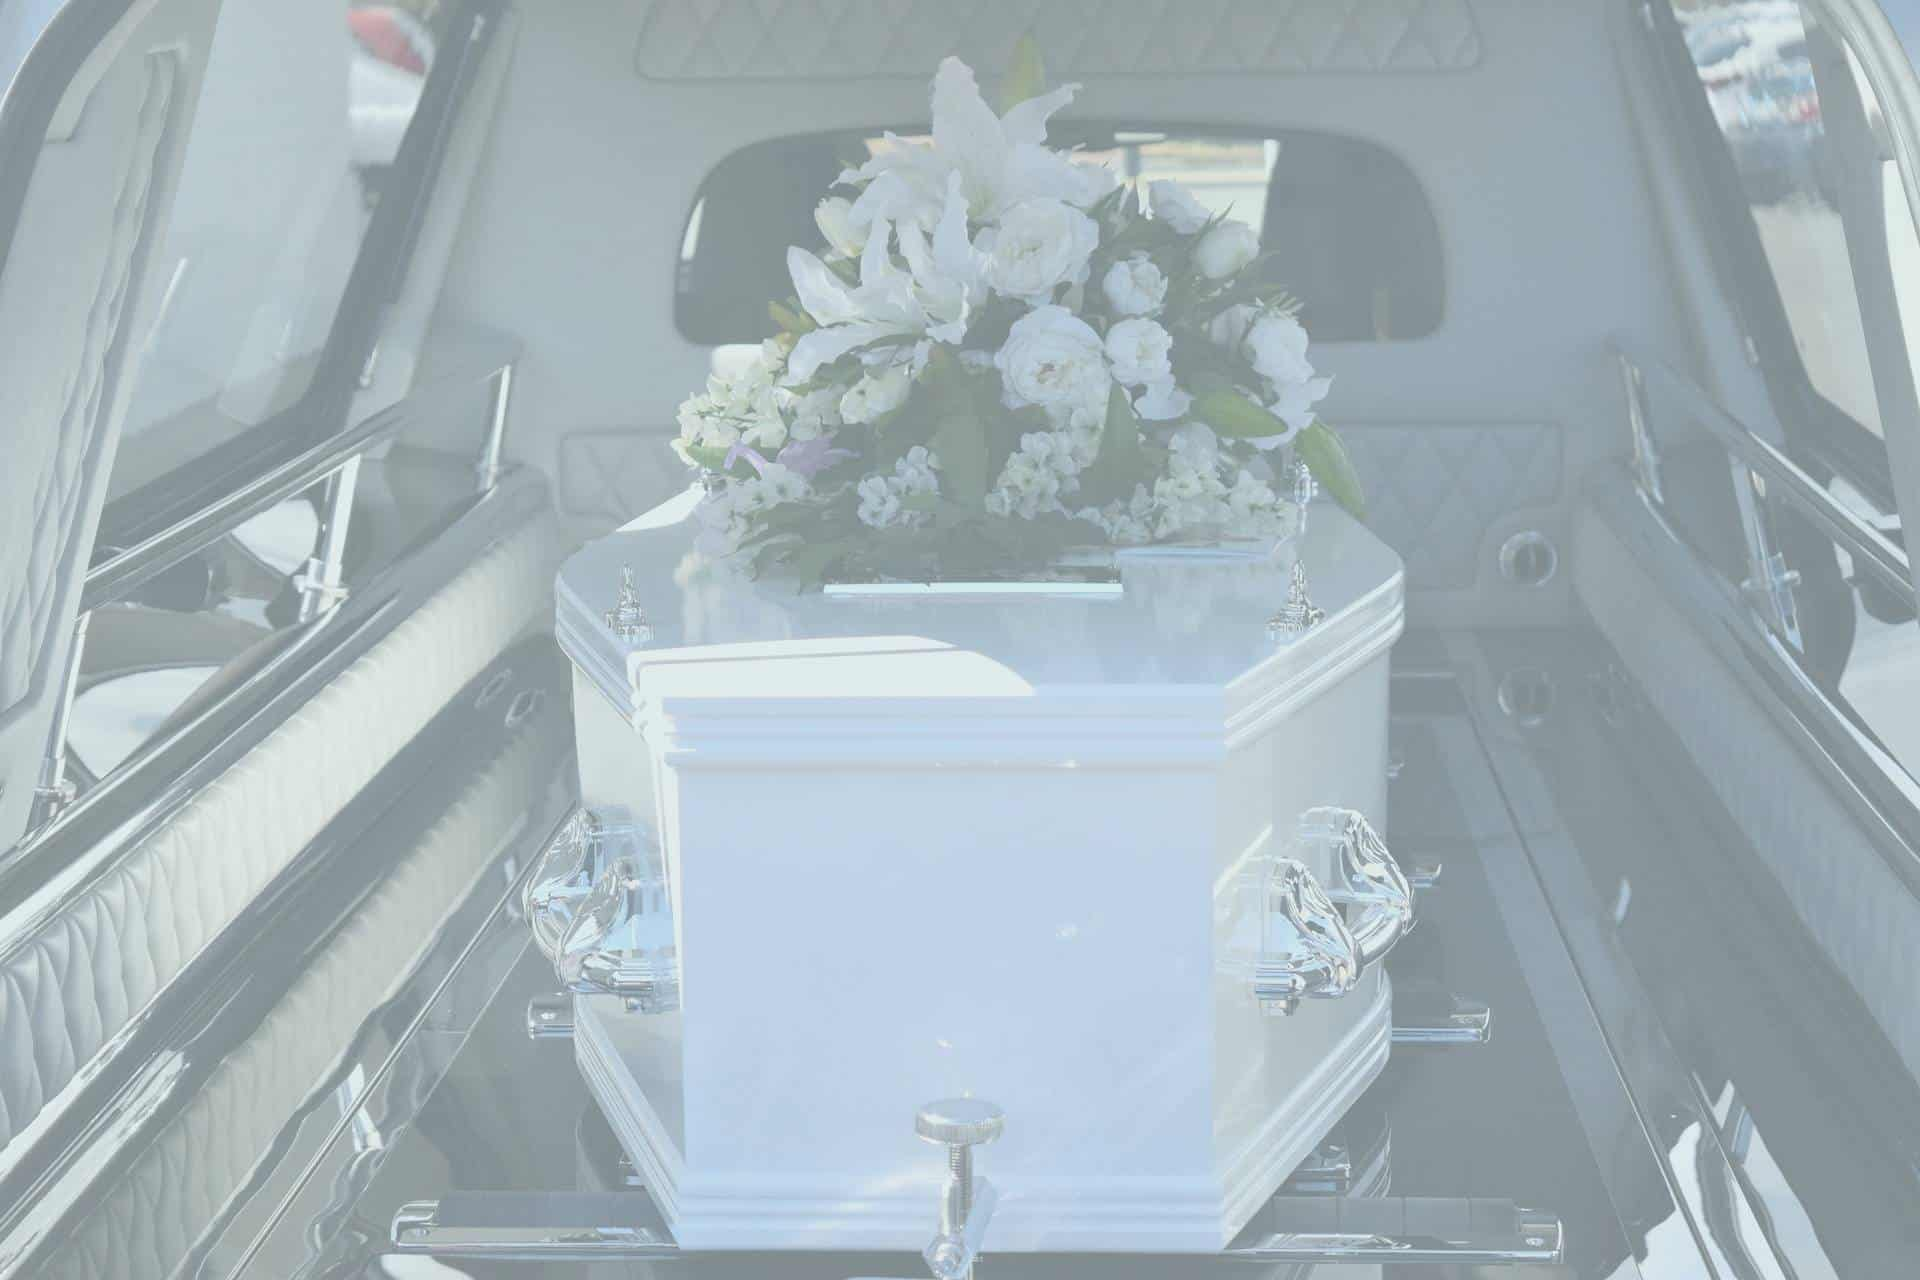 The Best Guide to Planning the Perfect Funeral